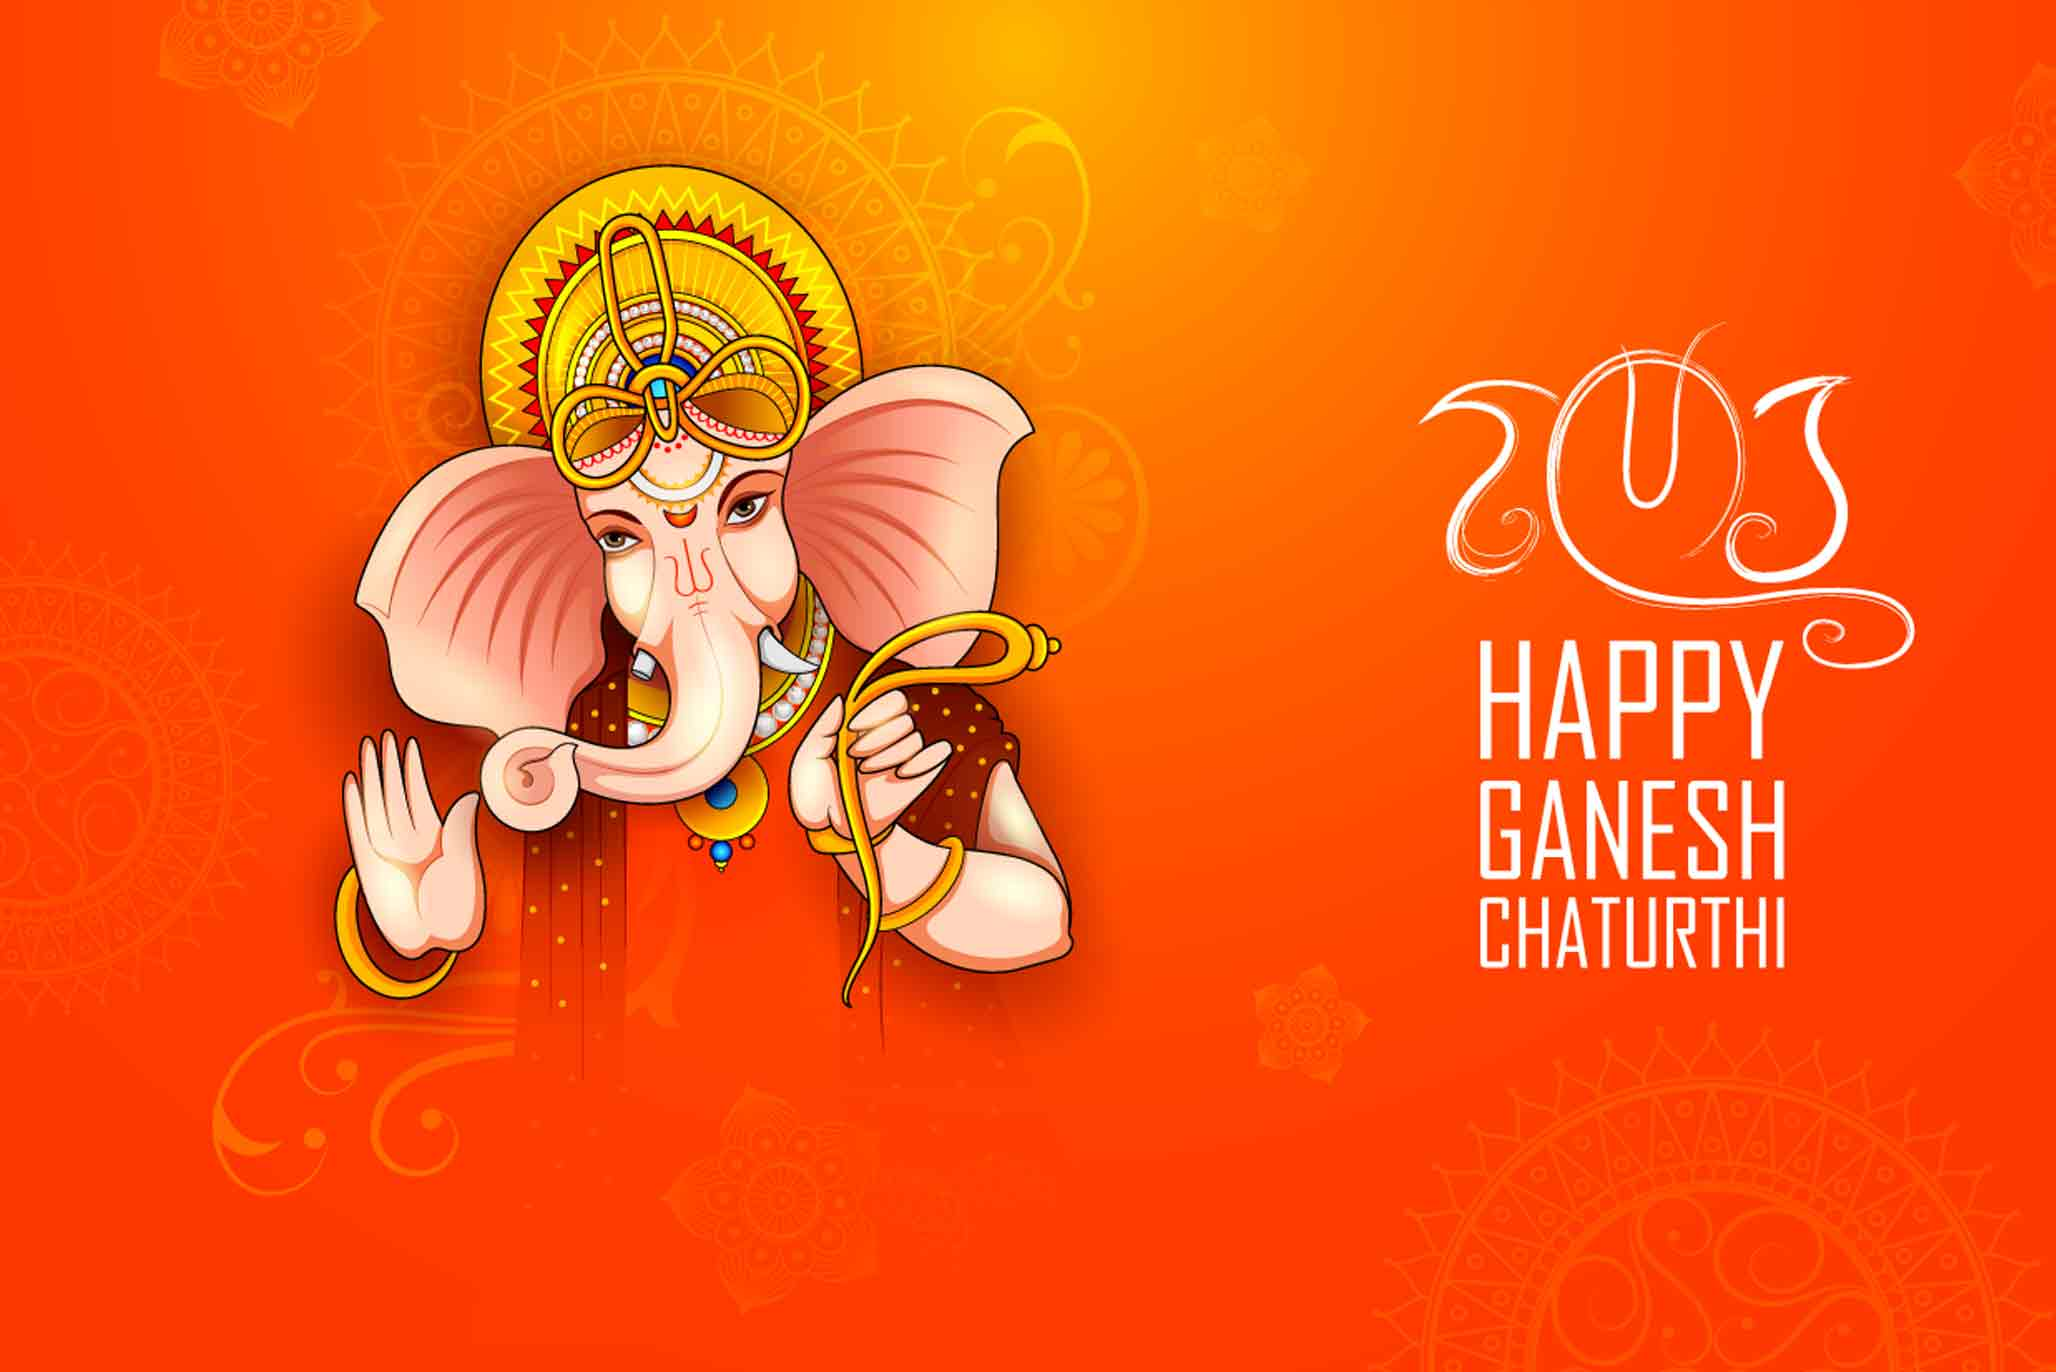 On This Ganesh Chaturthi Lord Ganesha Teaching A Lesson To Kubera Is For